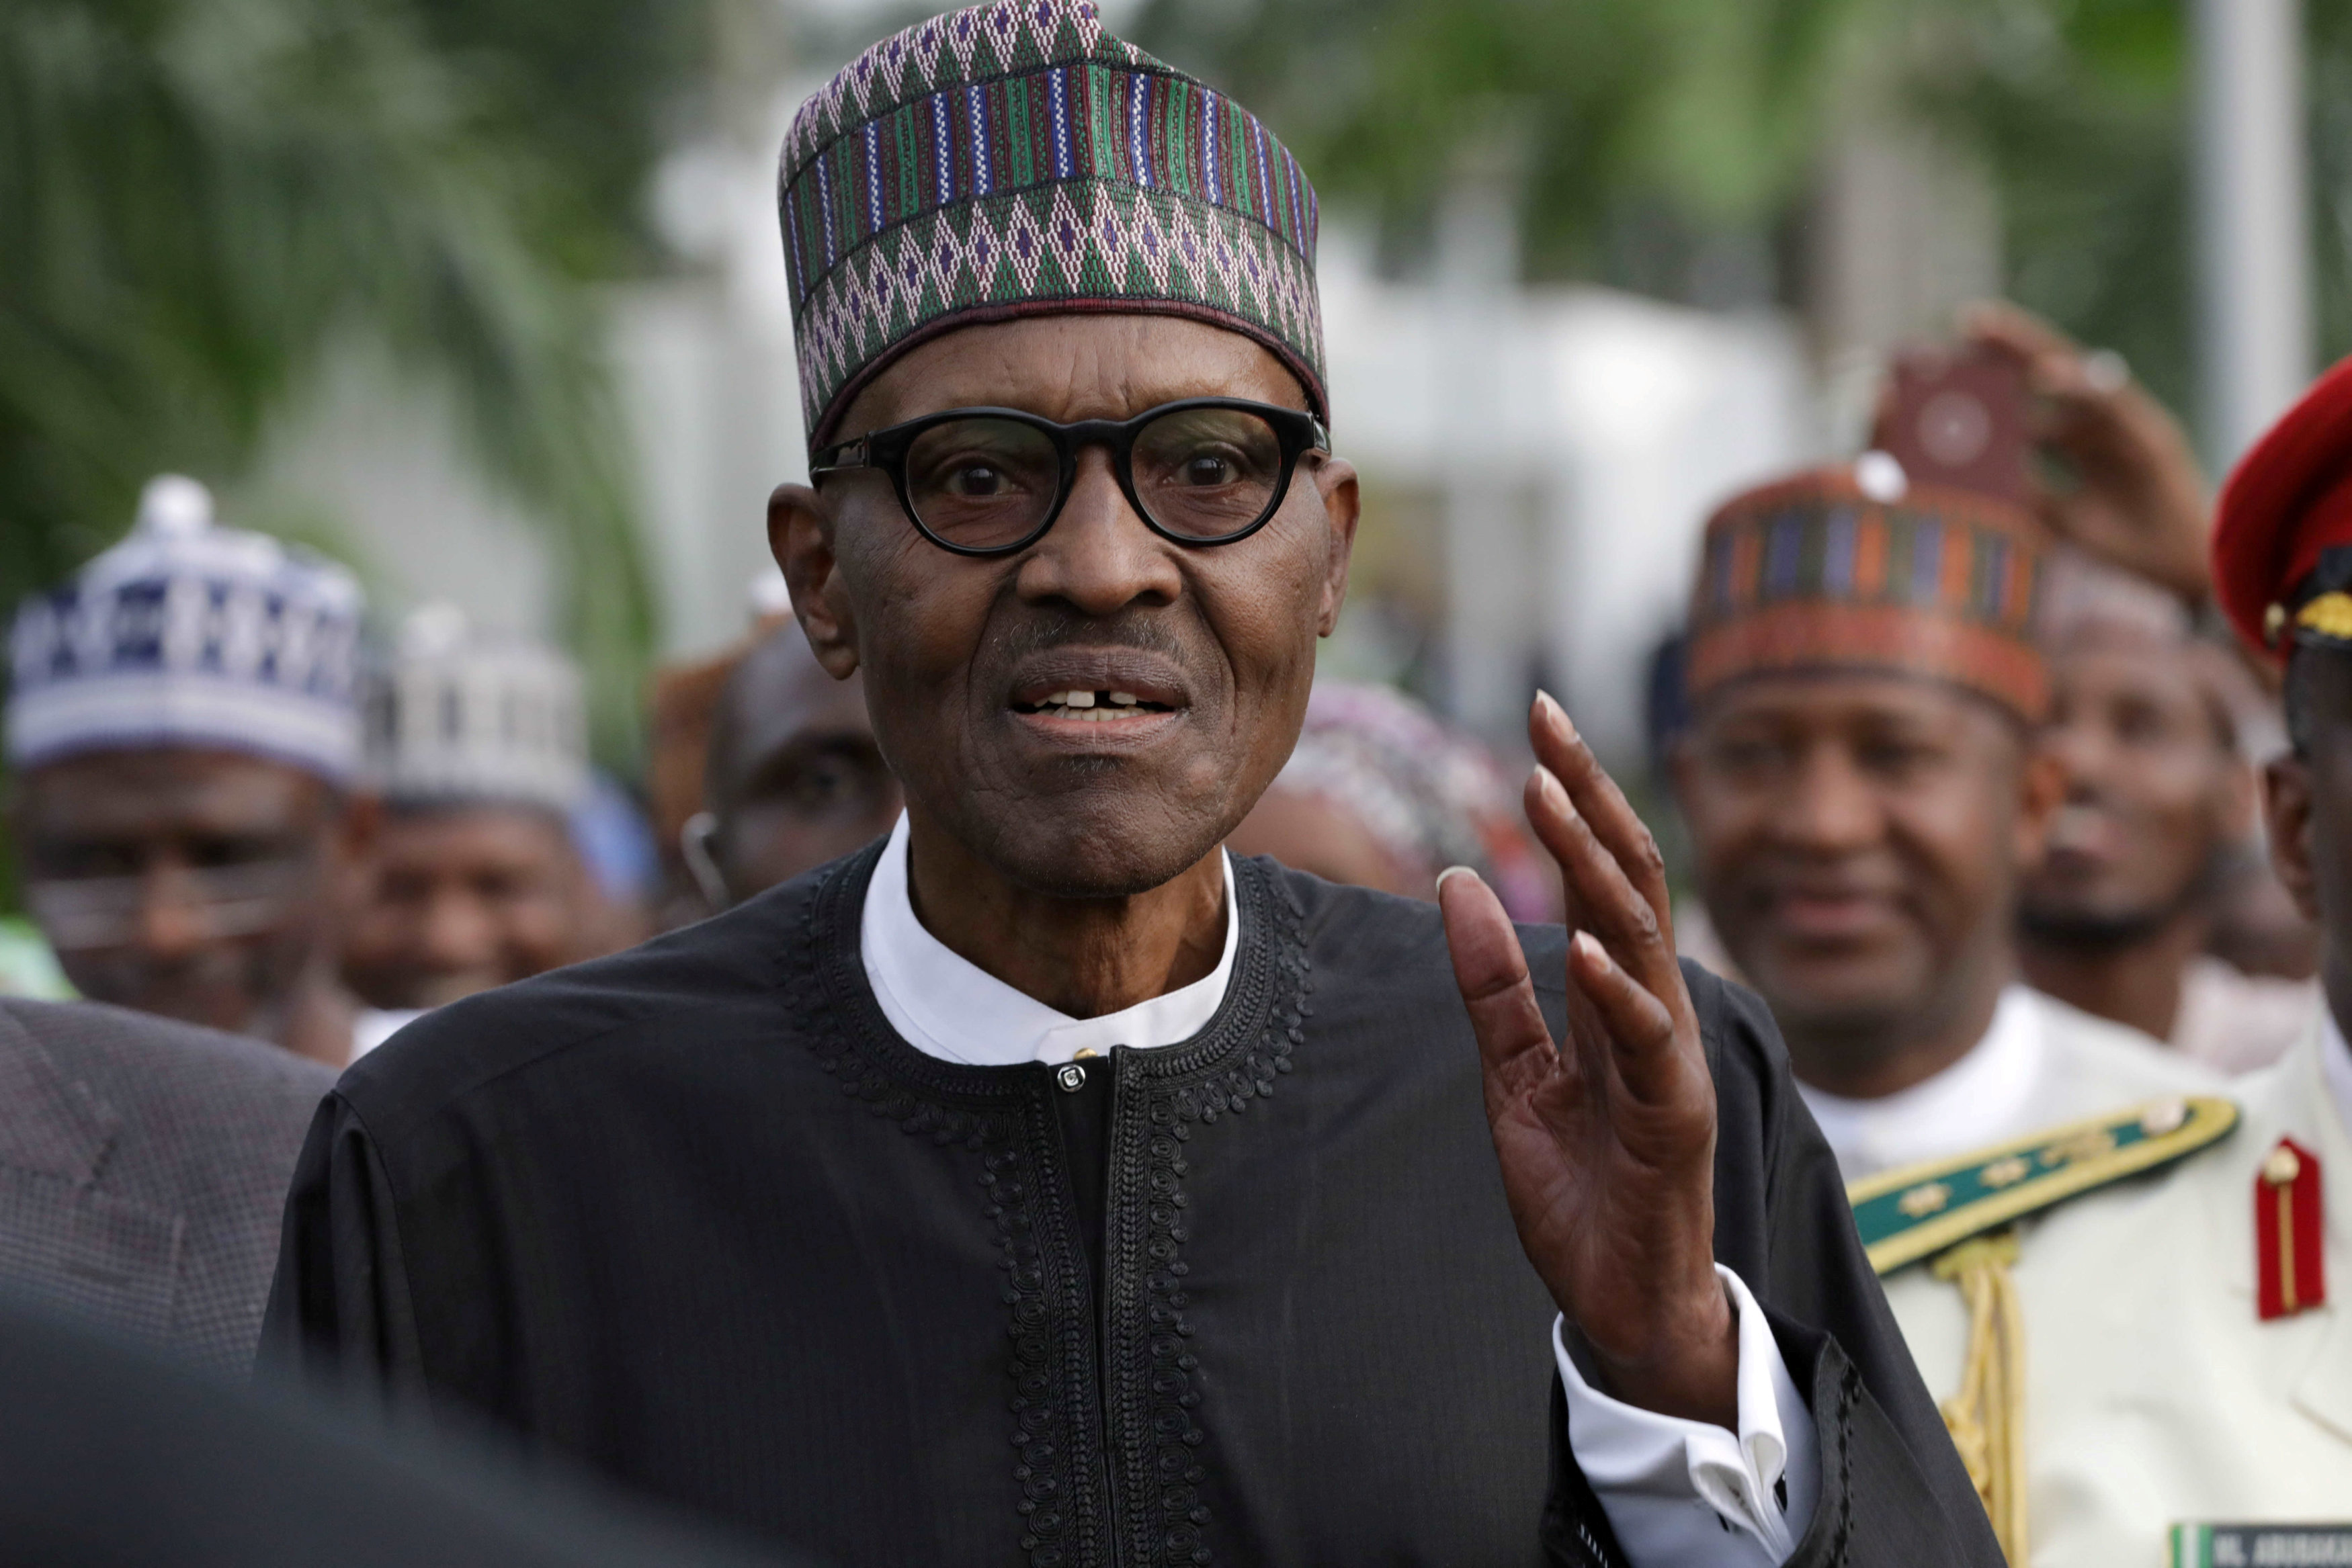 Nigeria's Buhari Rejects Separatism, Takes Back Control After Medical Leave